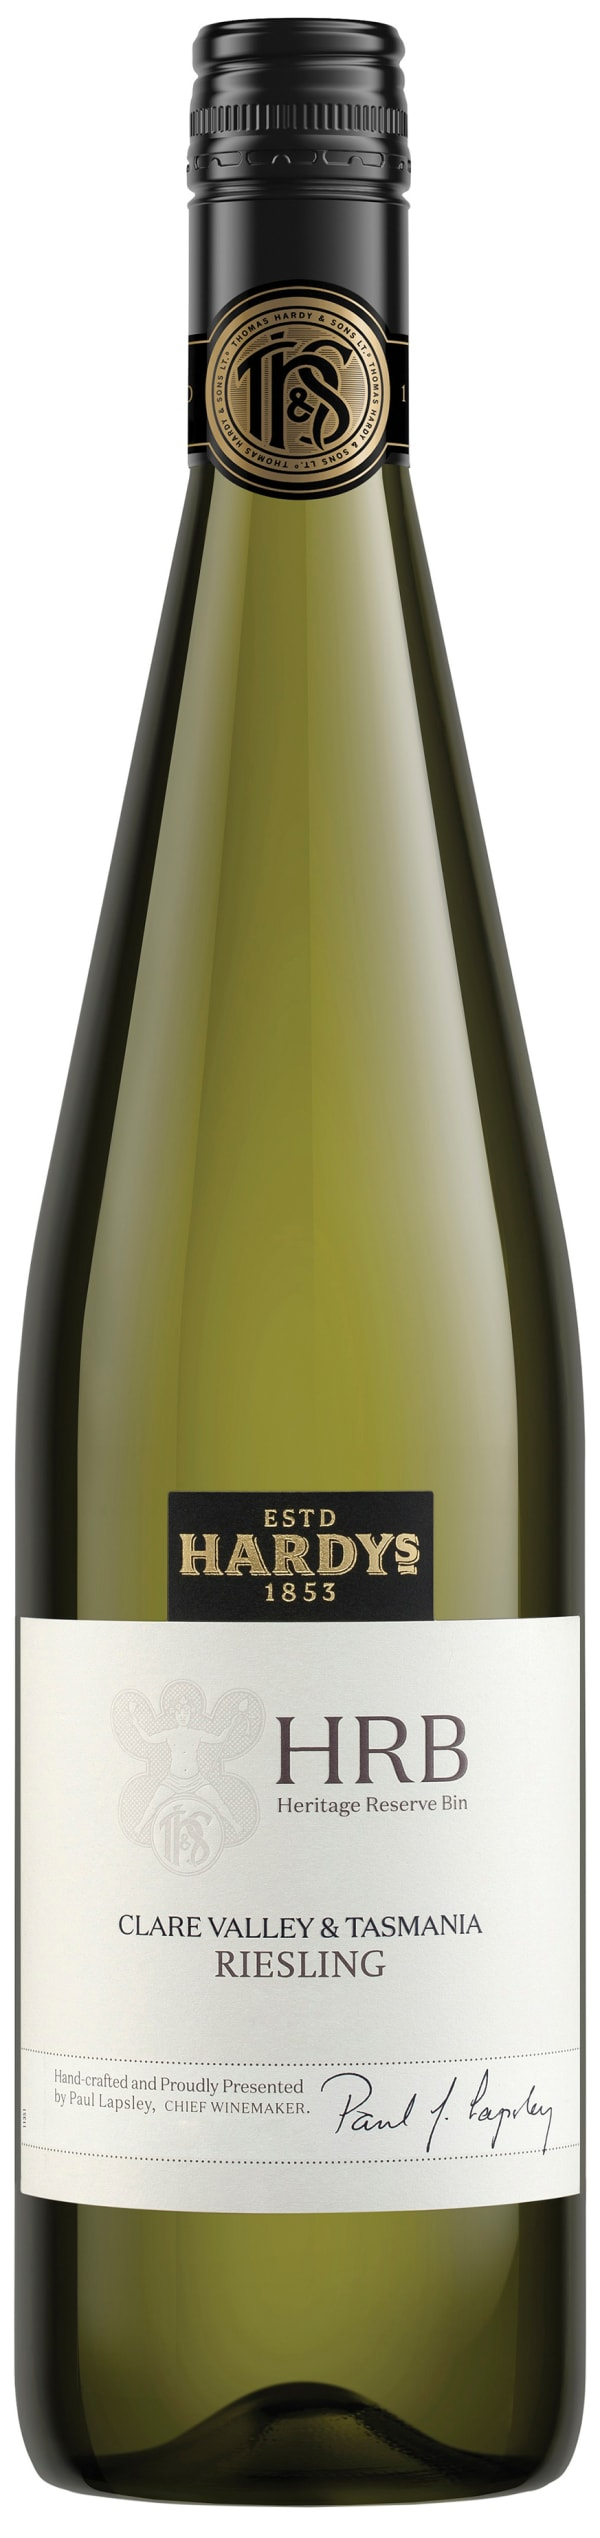 Hardy's HRB Riesling 2015